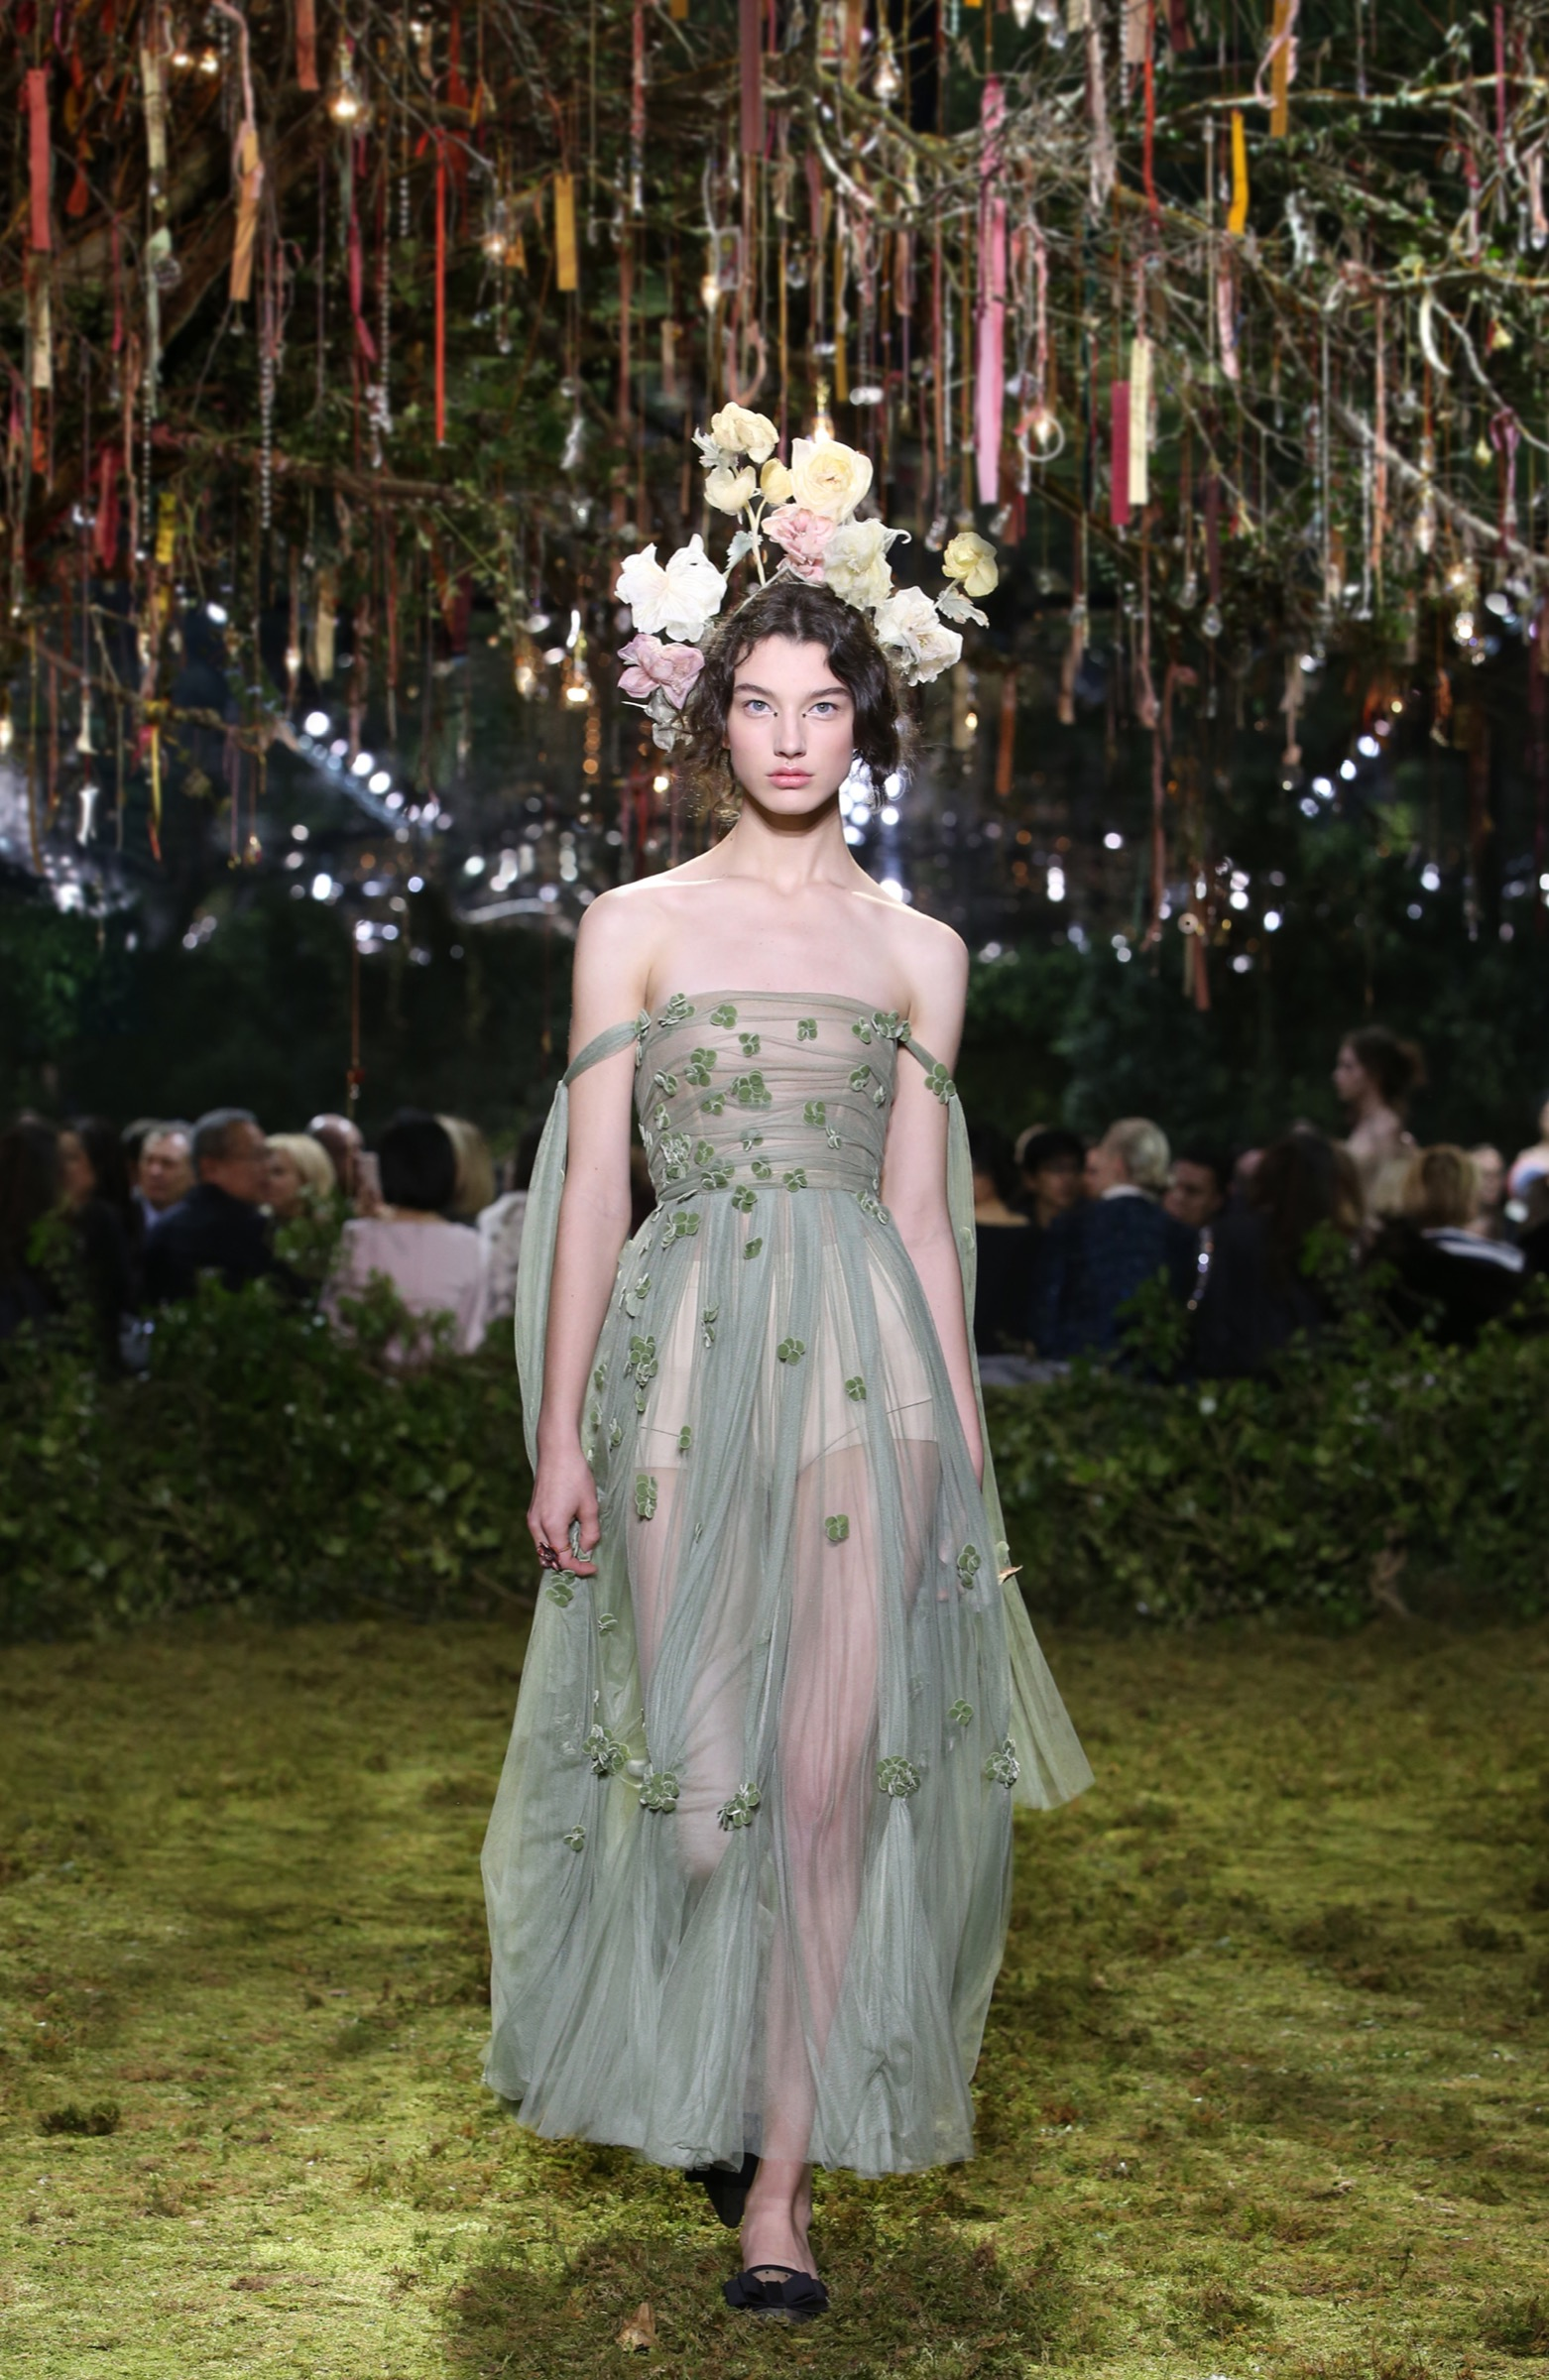 36f860c04e48 A midsummer garden s dream - Christian Dior Couture S S 2017